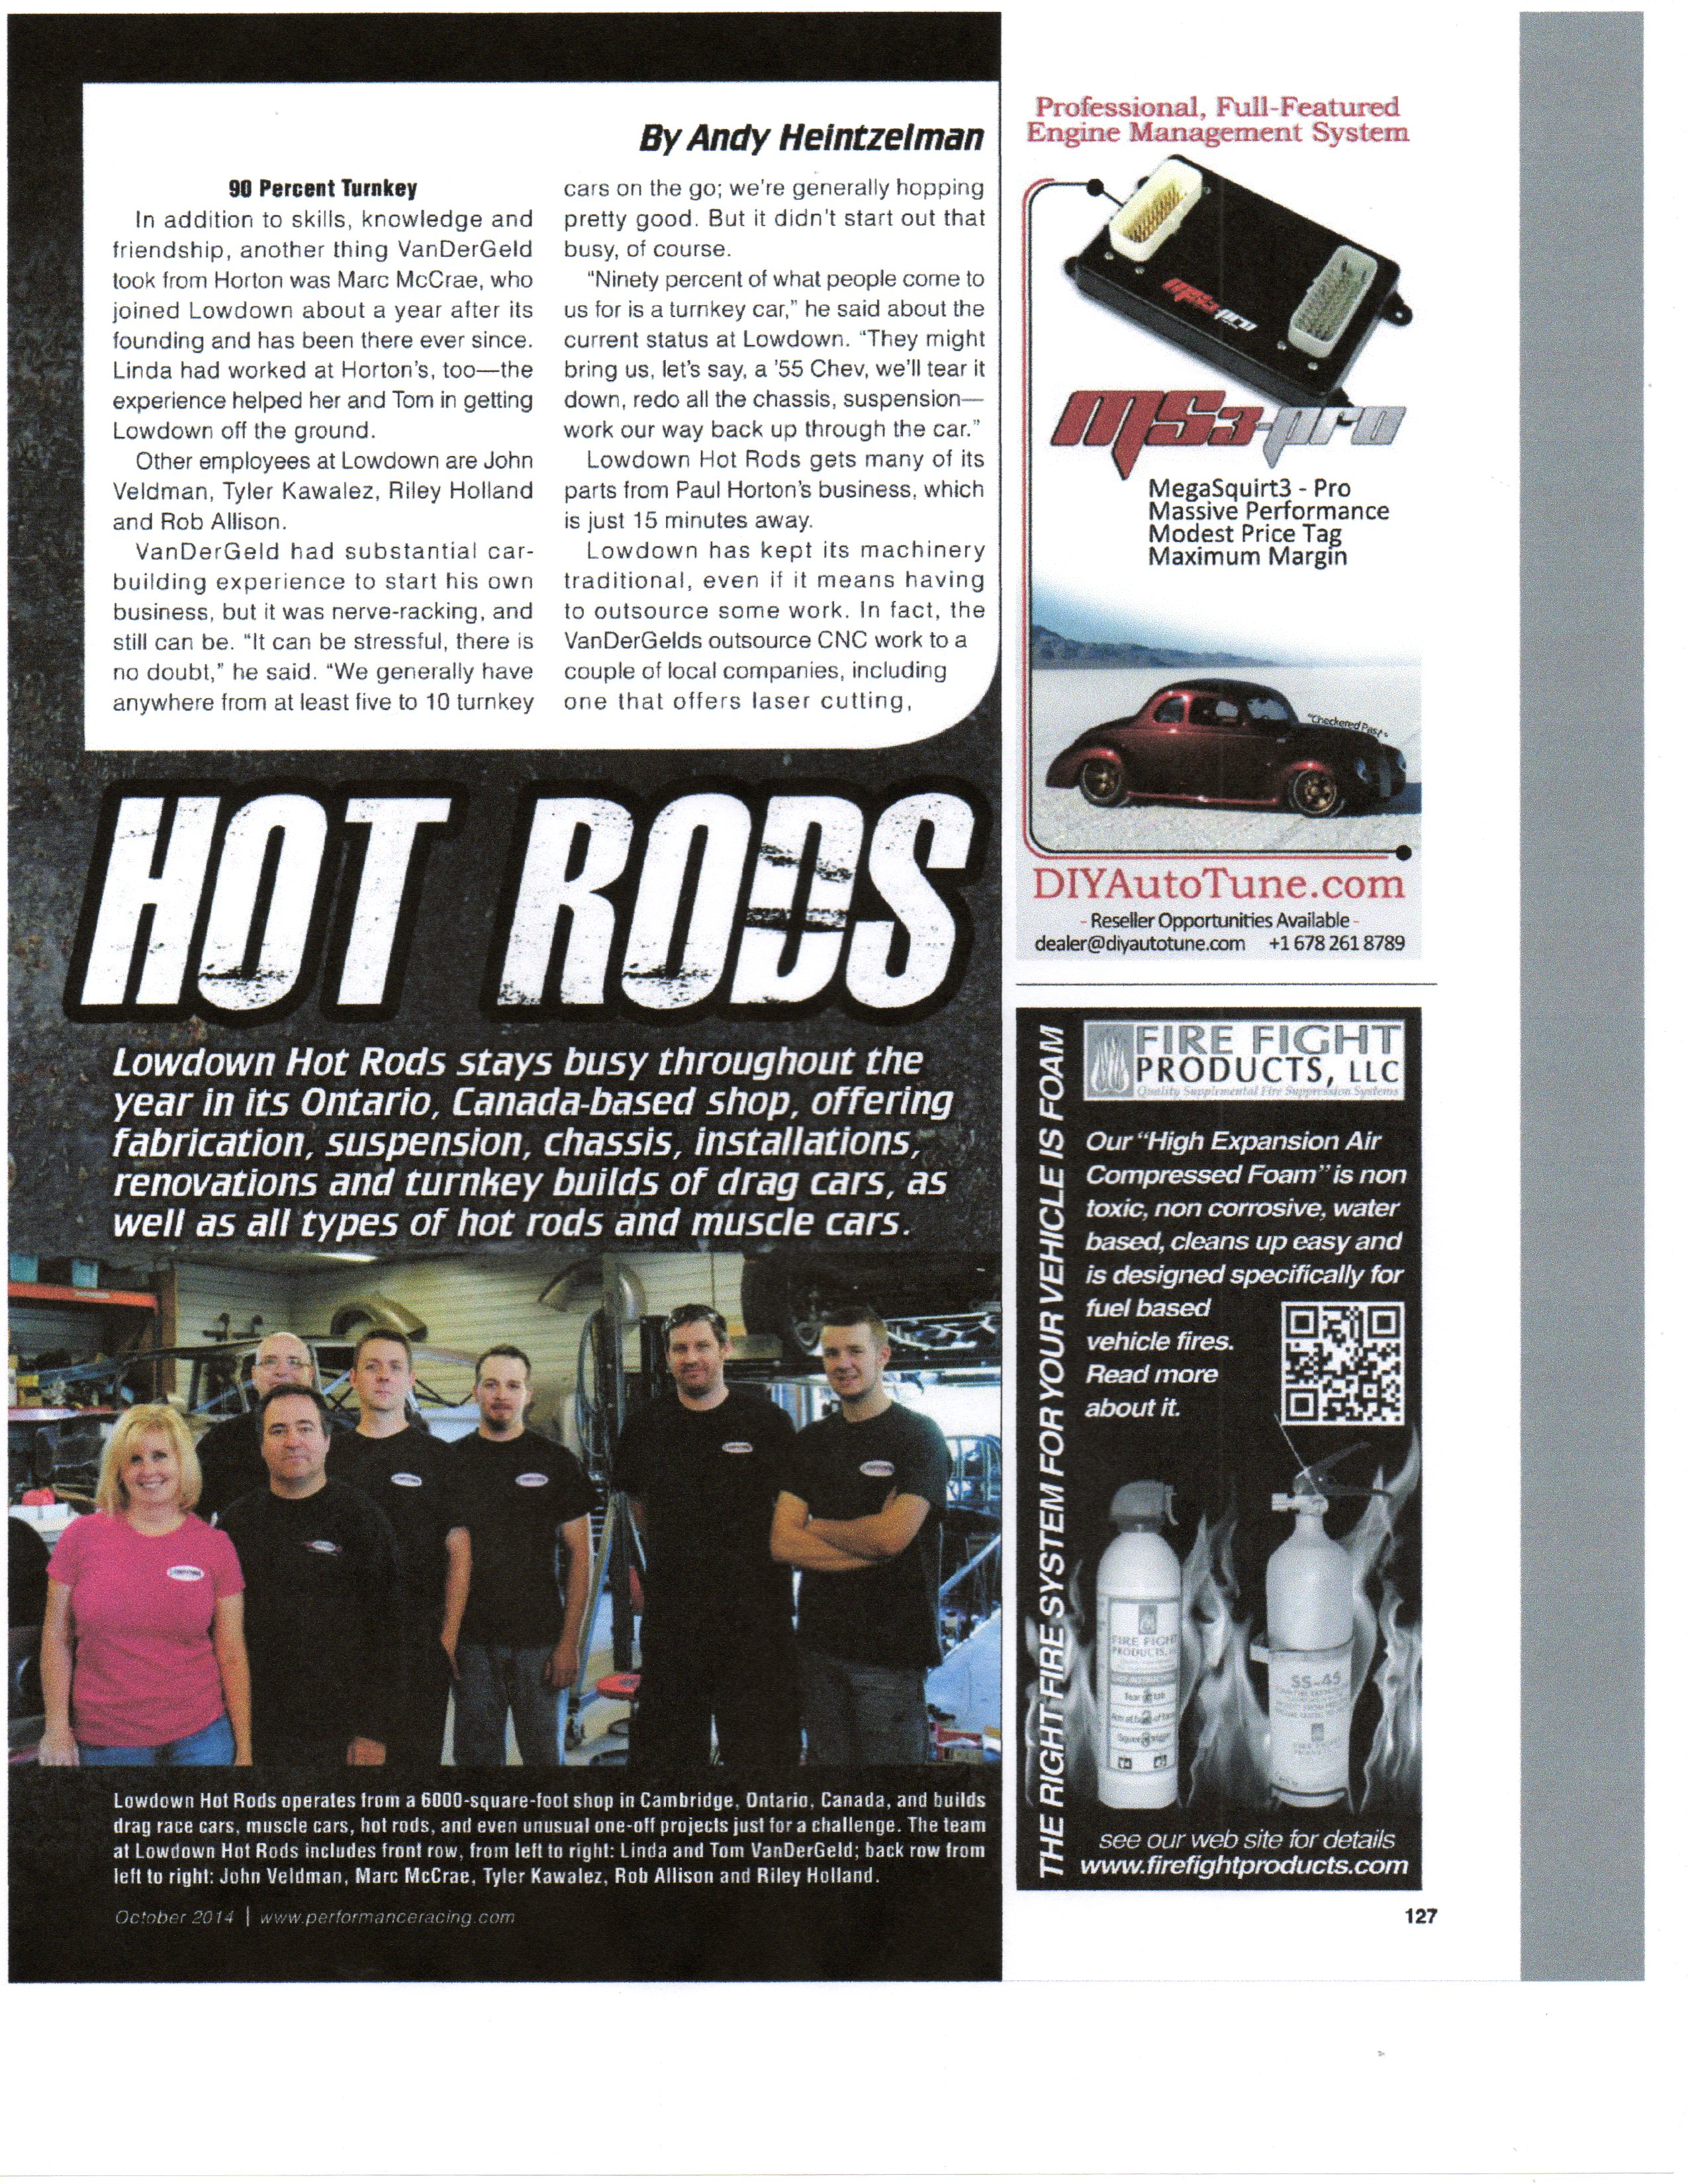 Lowdown Hot Rods - Hot Rod and Race Car Fabricating